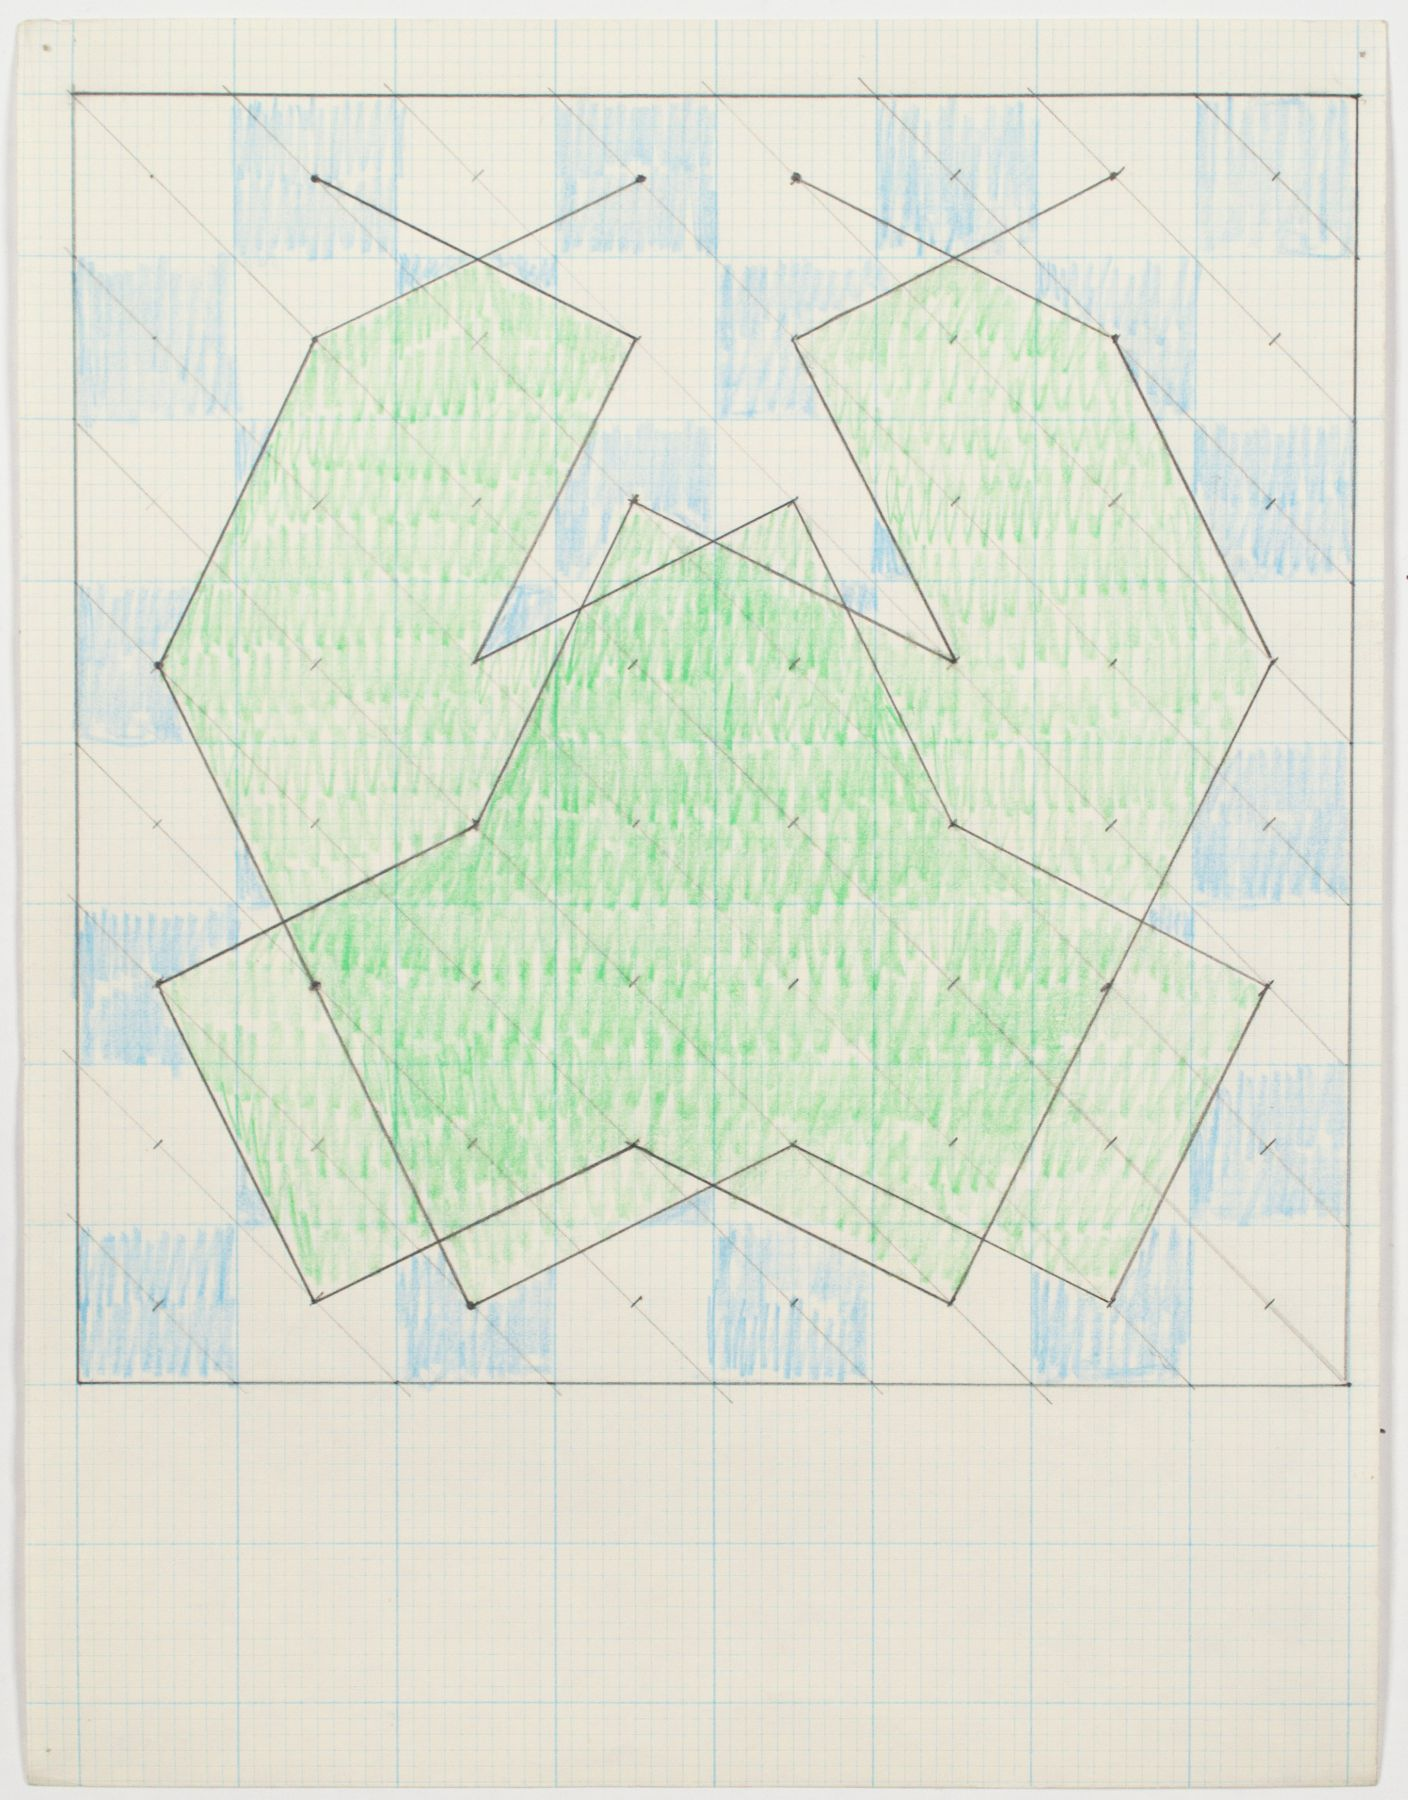 """Study for """"Knight Series"""", 1975, Graphite and colored pencil on graph paper"""